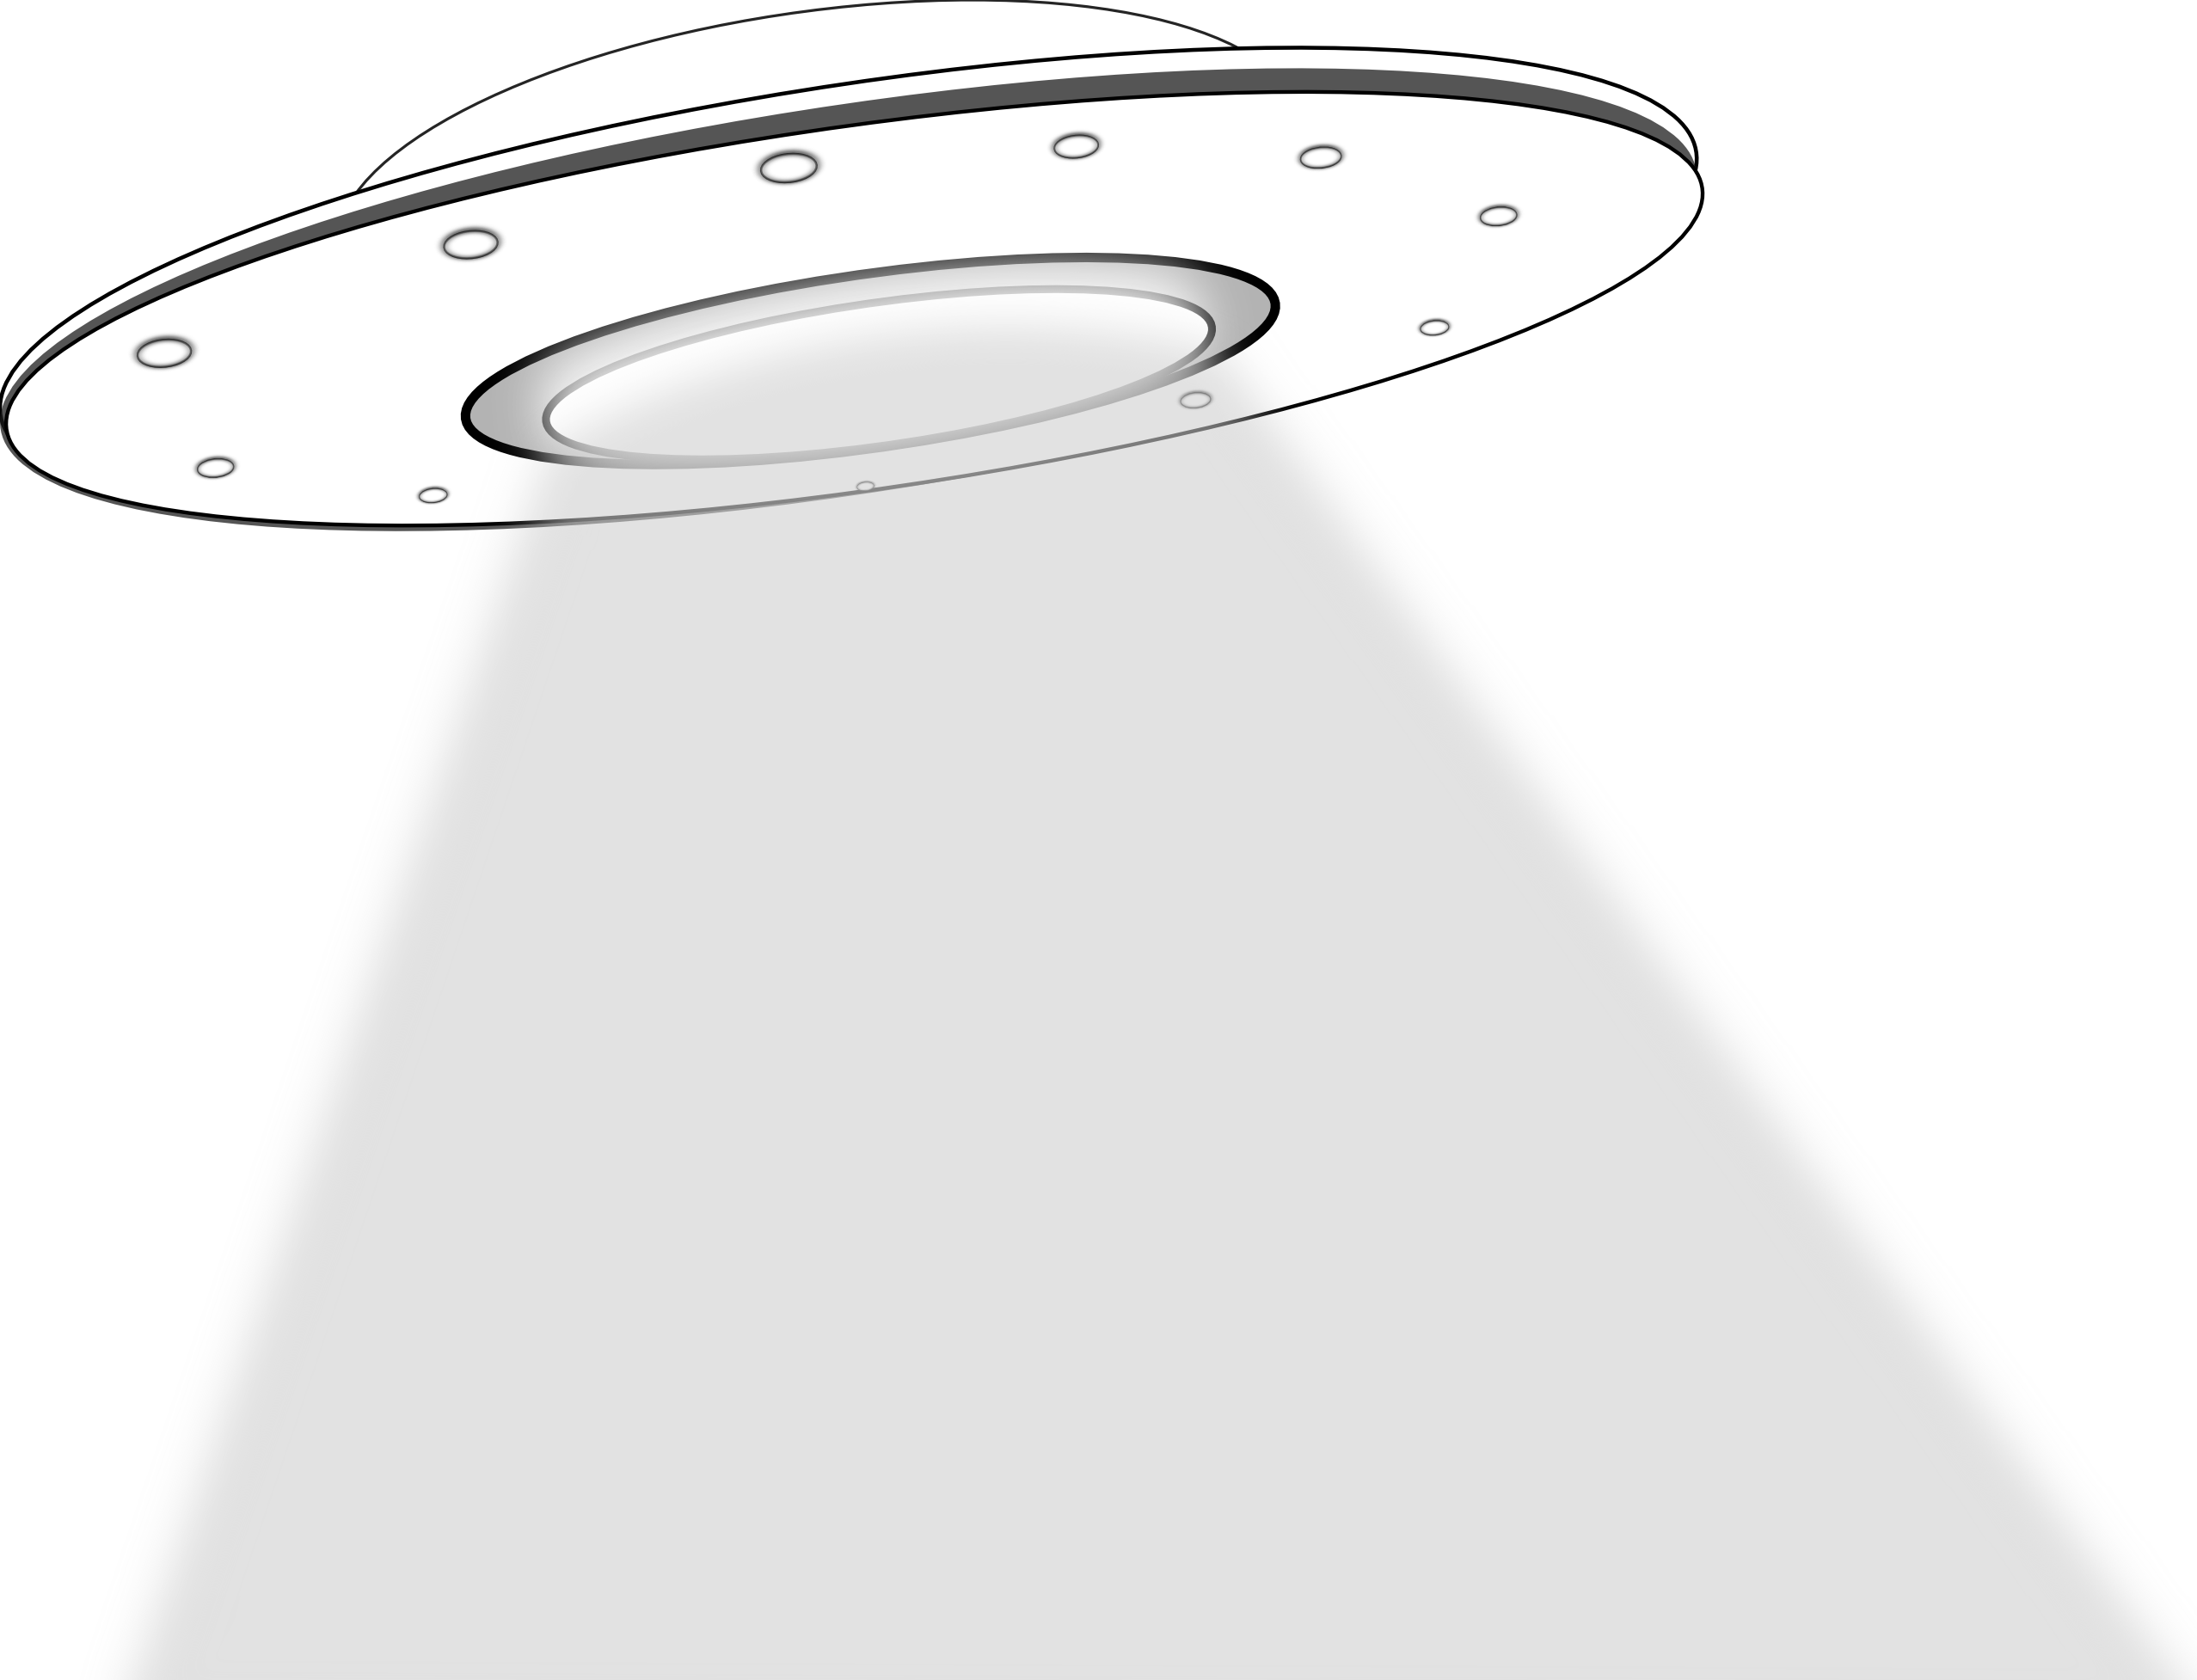 collection of high. Spaceship clipart ufo abduction